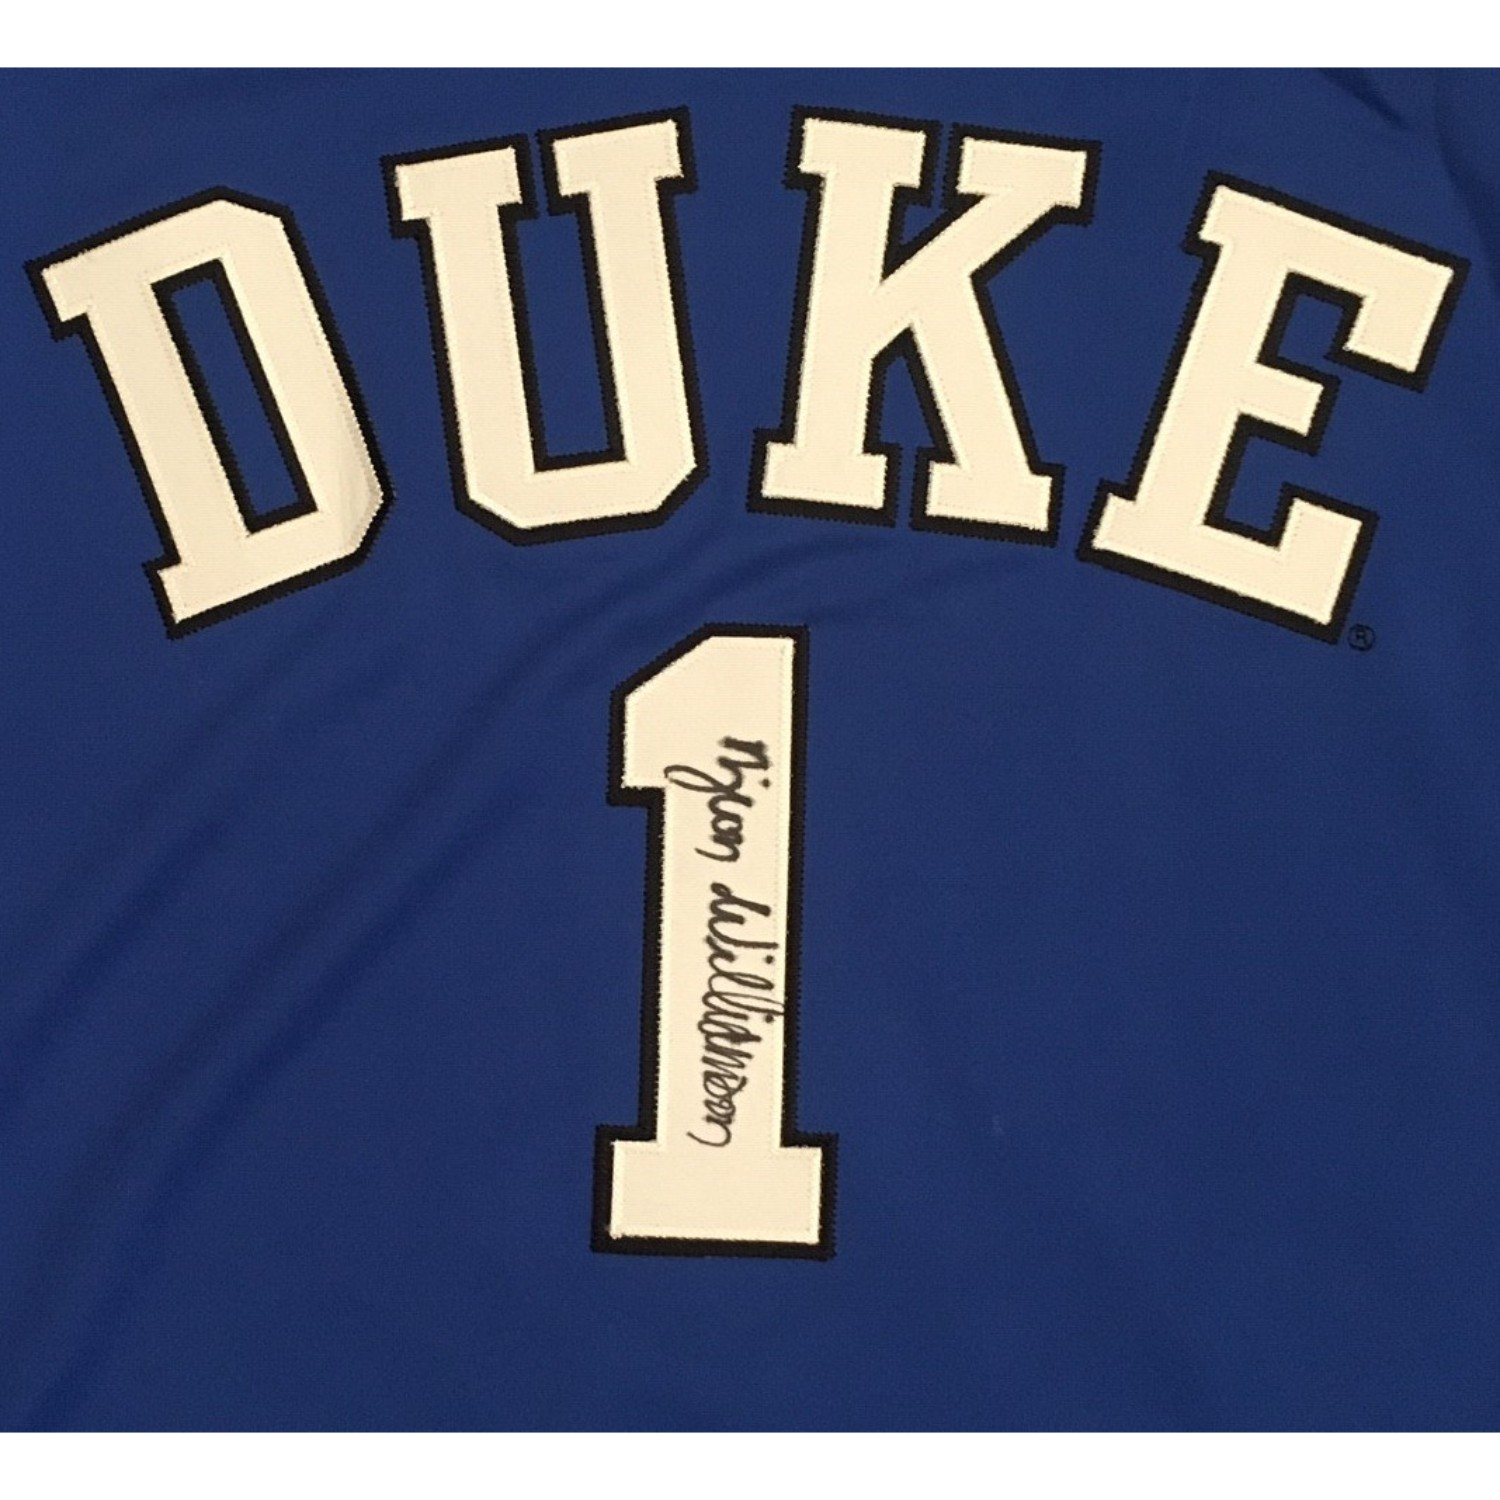 Zion Williamson Autographed Duke Blue Devils Signed Nike Basketball Jersey PSA DNA COA 3 Future NBA #1 Draft Pick and Duke Blue Devil Zion Williamson has autographed this officially licensed Duke Nike jersey. Name and numbers sewn on, size XL. Rare opportunity to get an item with his full signature. One of the most exciting and popular Duke players to come around in a long time. His autograph is in high demand! Don't miss out on this item. Autograph is authenticated by PSA/DNA, the world's leading authenticator of sports autographs. Comes with their unique sticker # fixed to the item and verified on their website. Also, comes with their certificate of authenticity with same matching #. Receive exact item shown.